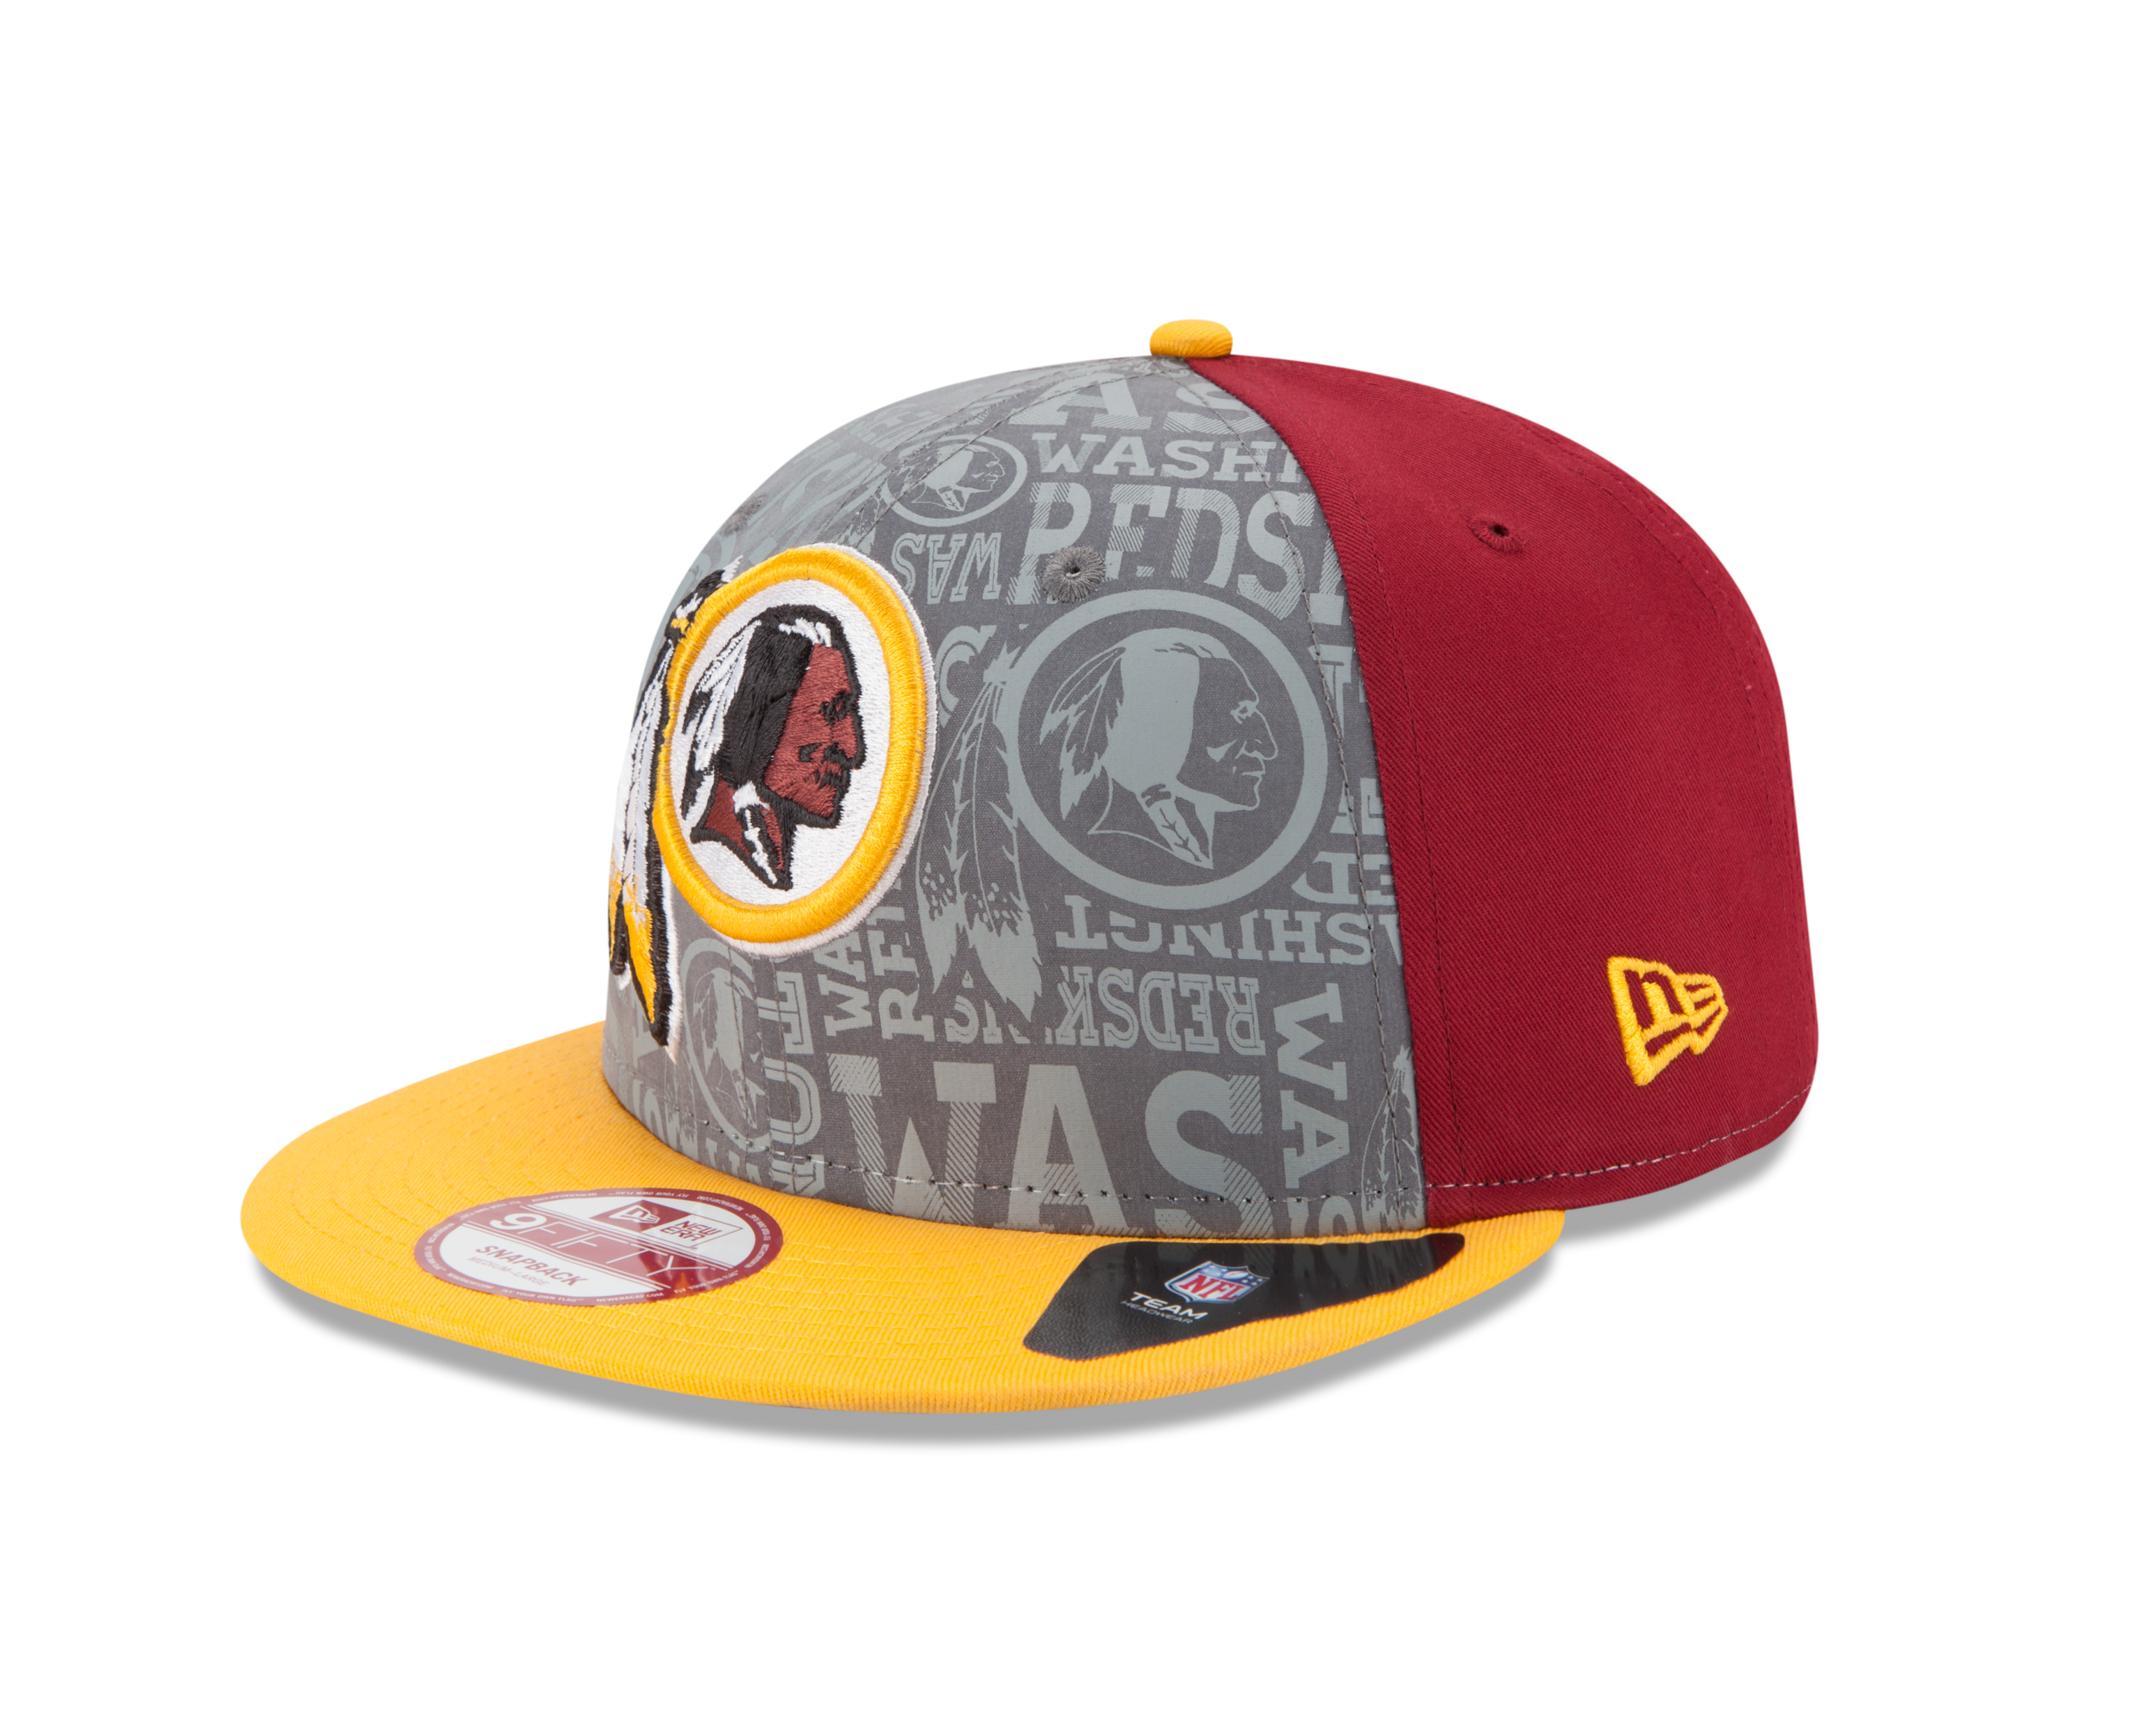 100% authentic 310ff b221a 10992598 9FIFTY NFLDRAFT14 WASRED TEAM 3QL